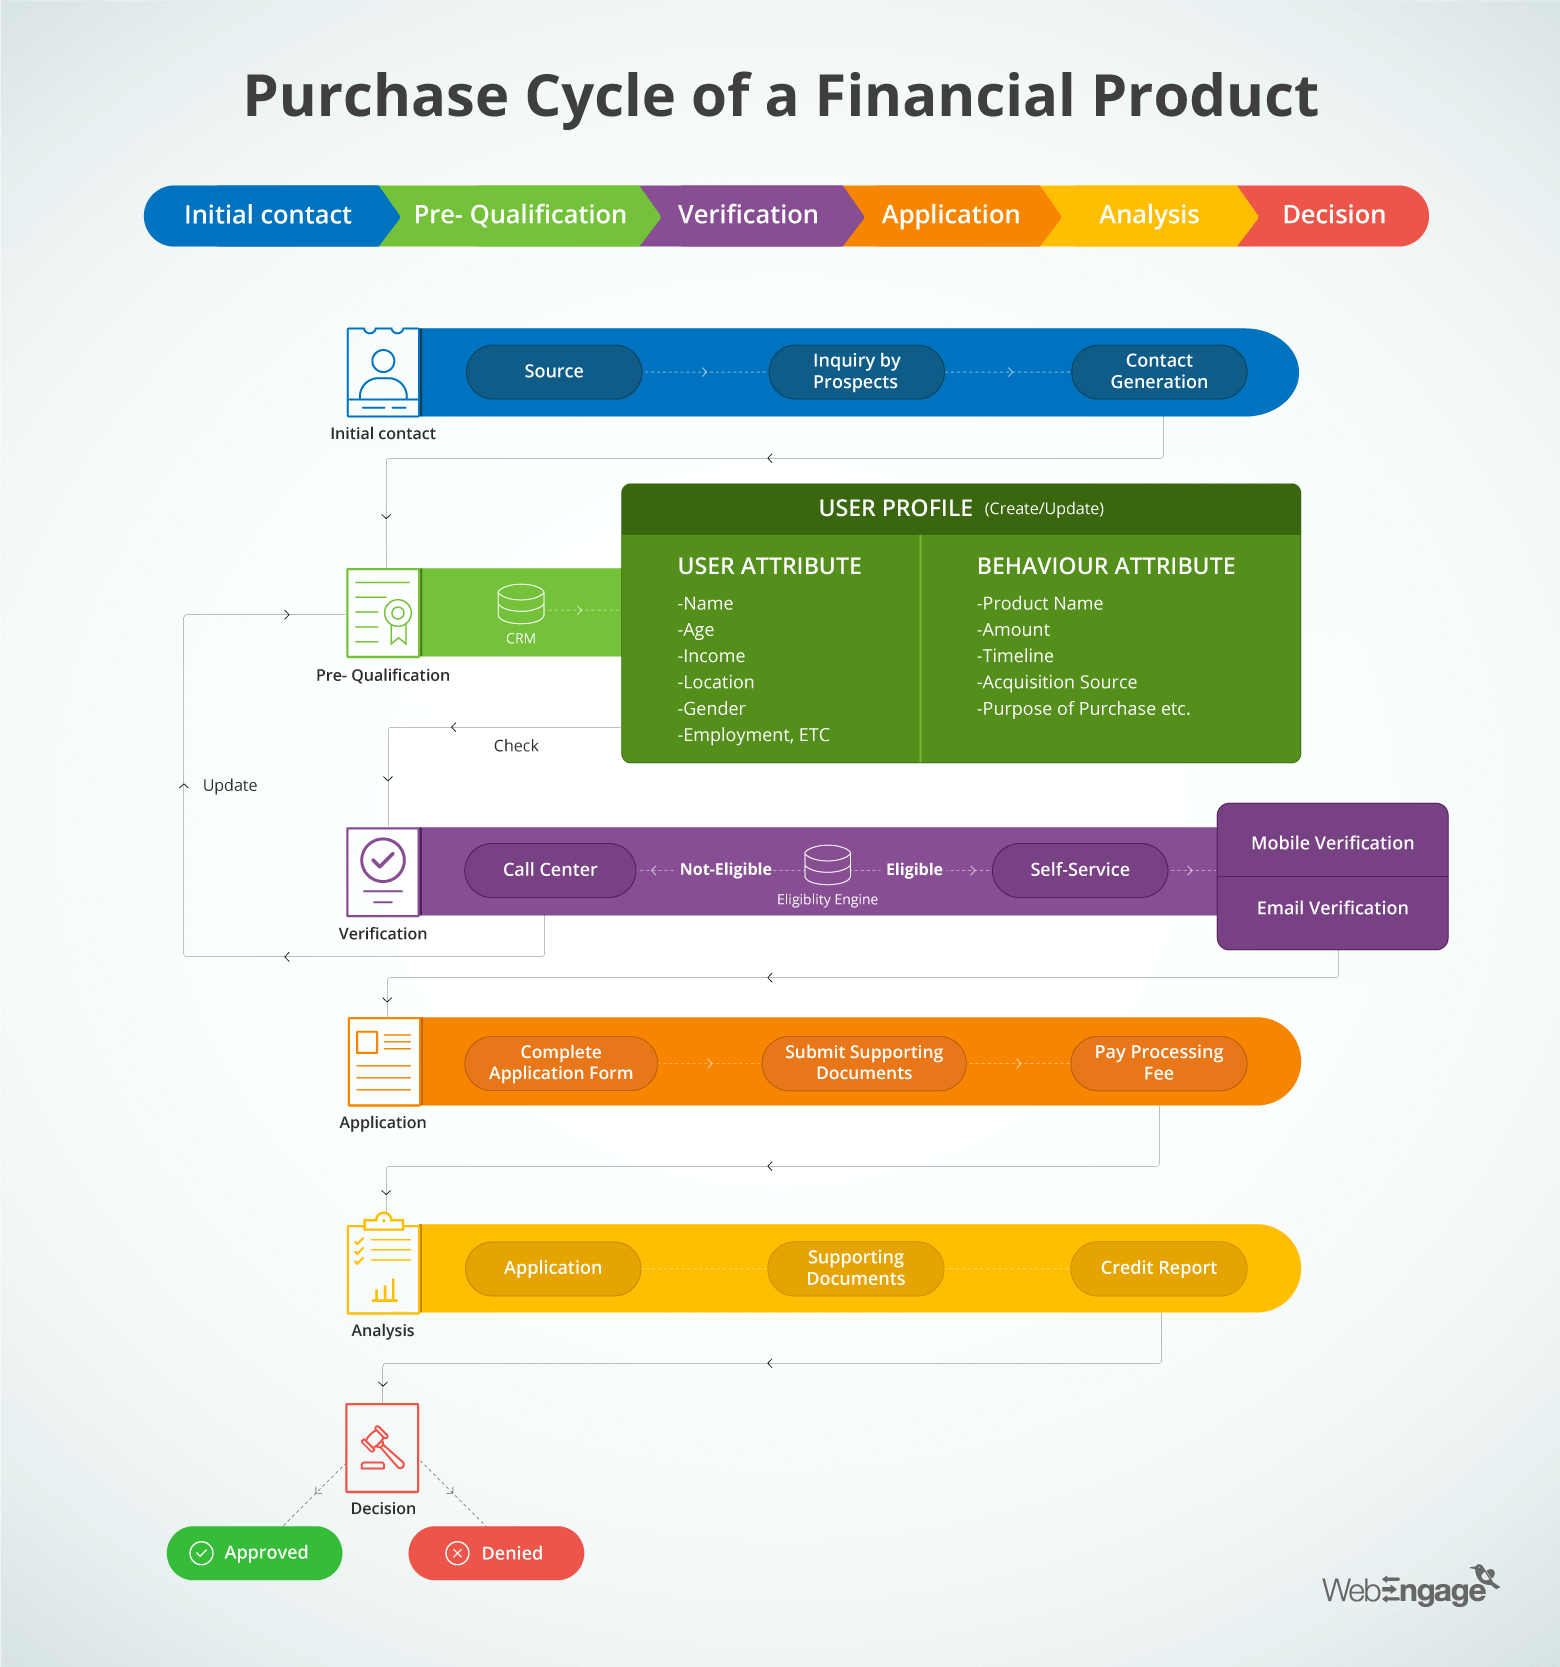 Purchase Cycle flow of Financial Product explained